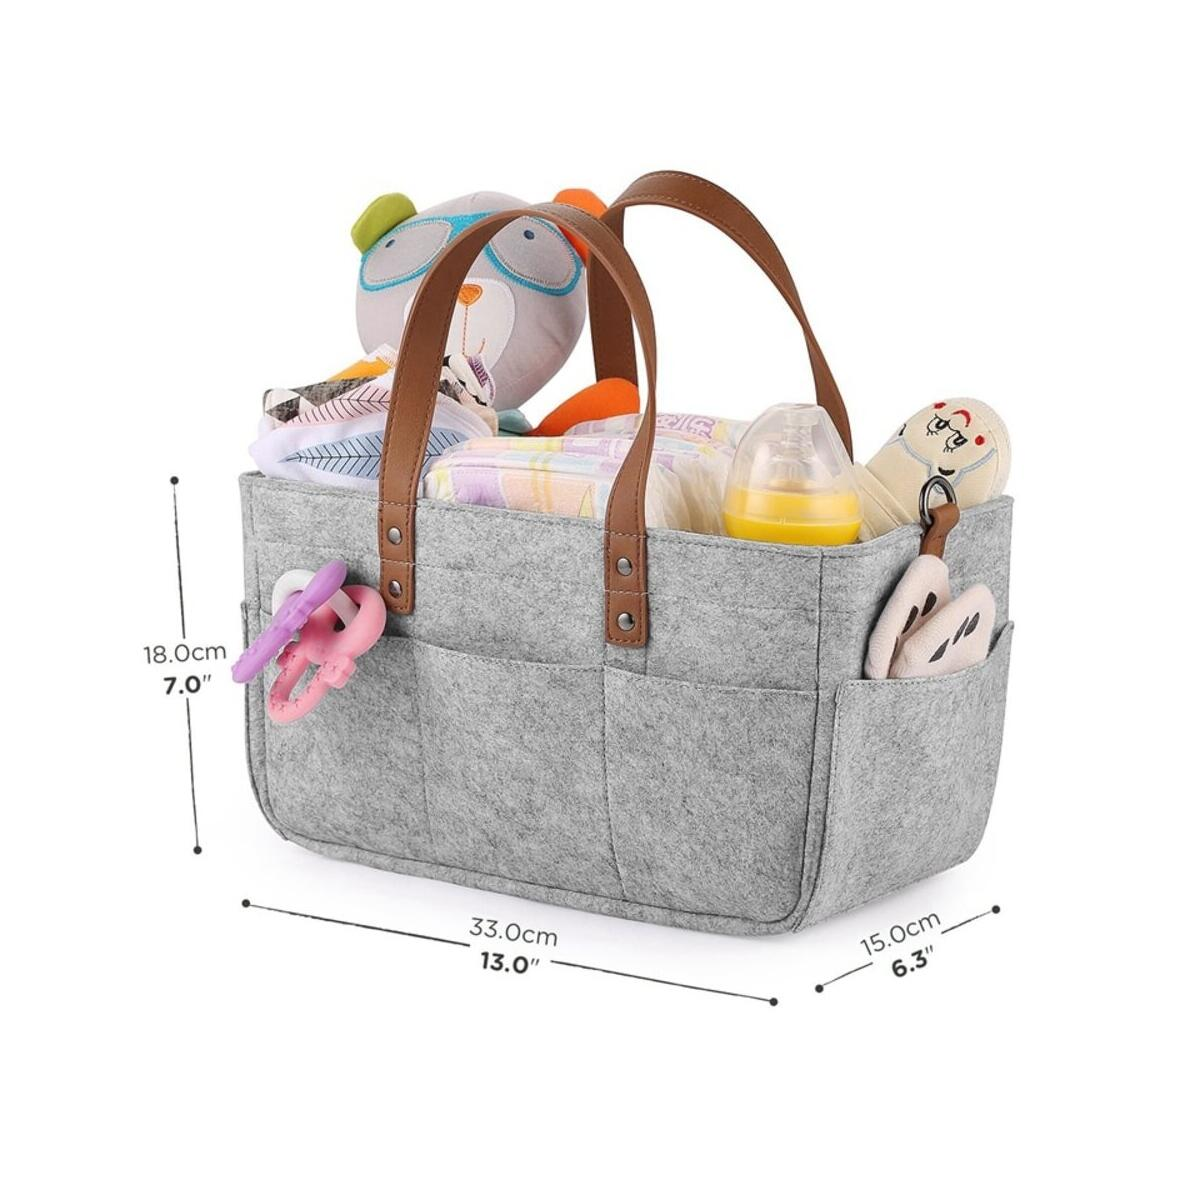 Lightweight Portable Felt Baby Diaper Caddy Organizer Foldable Storage Basket with Changeable Compartments for Newborn